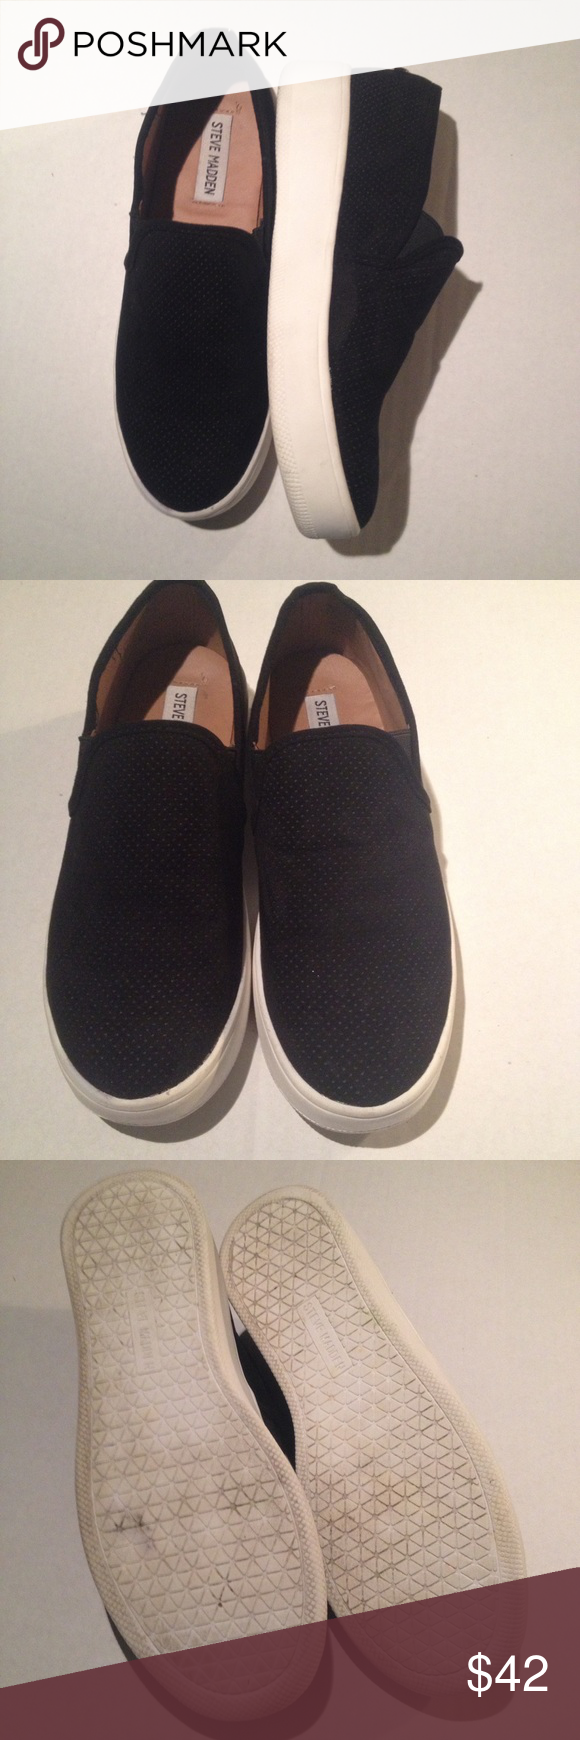 507c4243f1a Steve Madden platform sneakers Black suede look sneakers. 1 1 2 inch heel.  Style is called Gracy. Ask for more info if needed before buying.